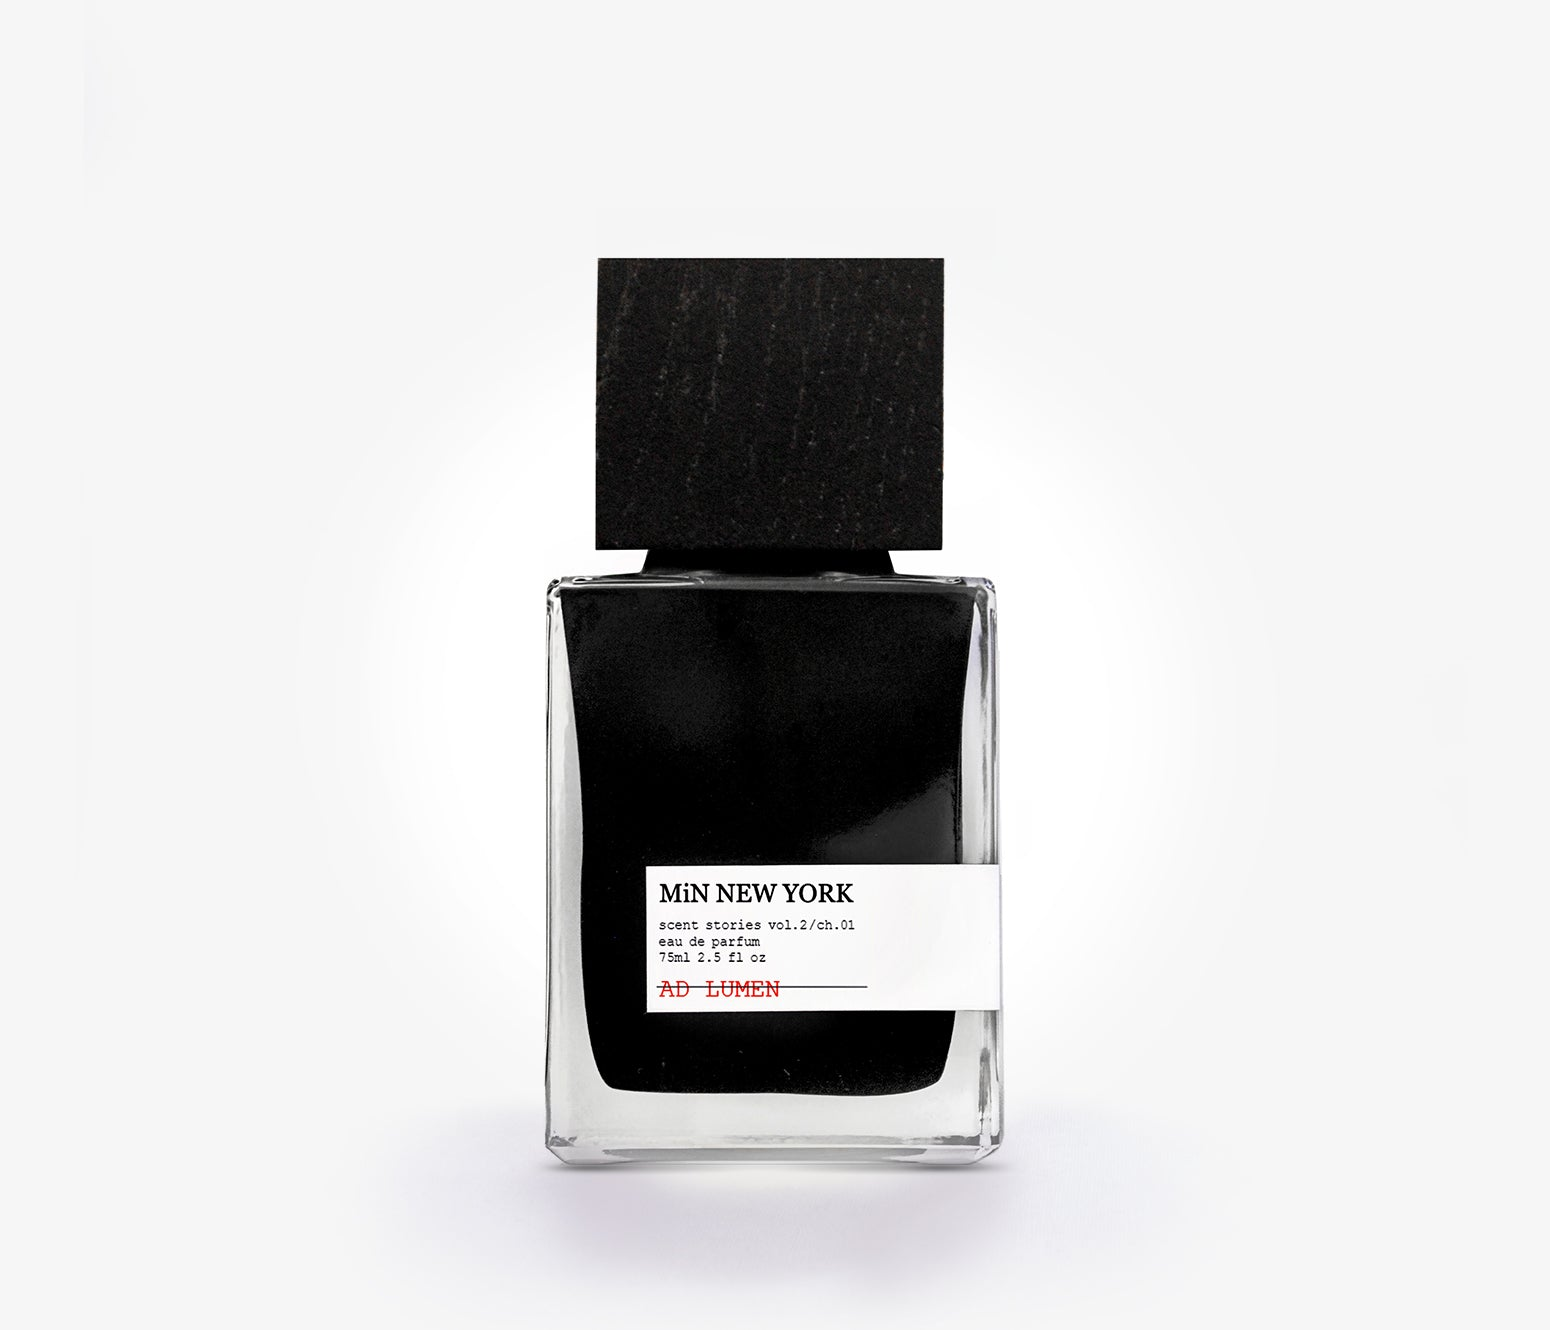 MiN New York - Ad Lumen - 75ml - EVQ001 - Product Image - Fragrance - Les Senteurs